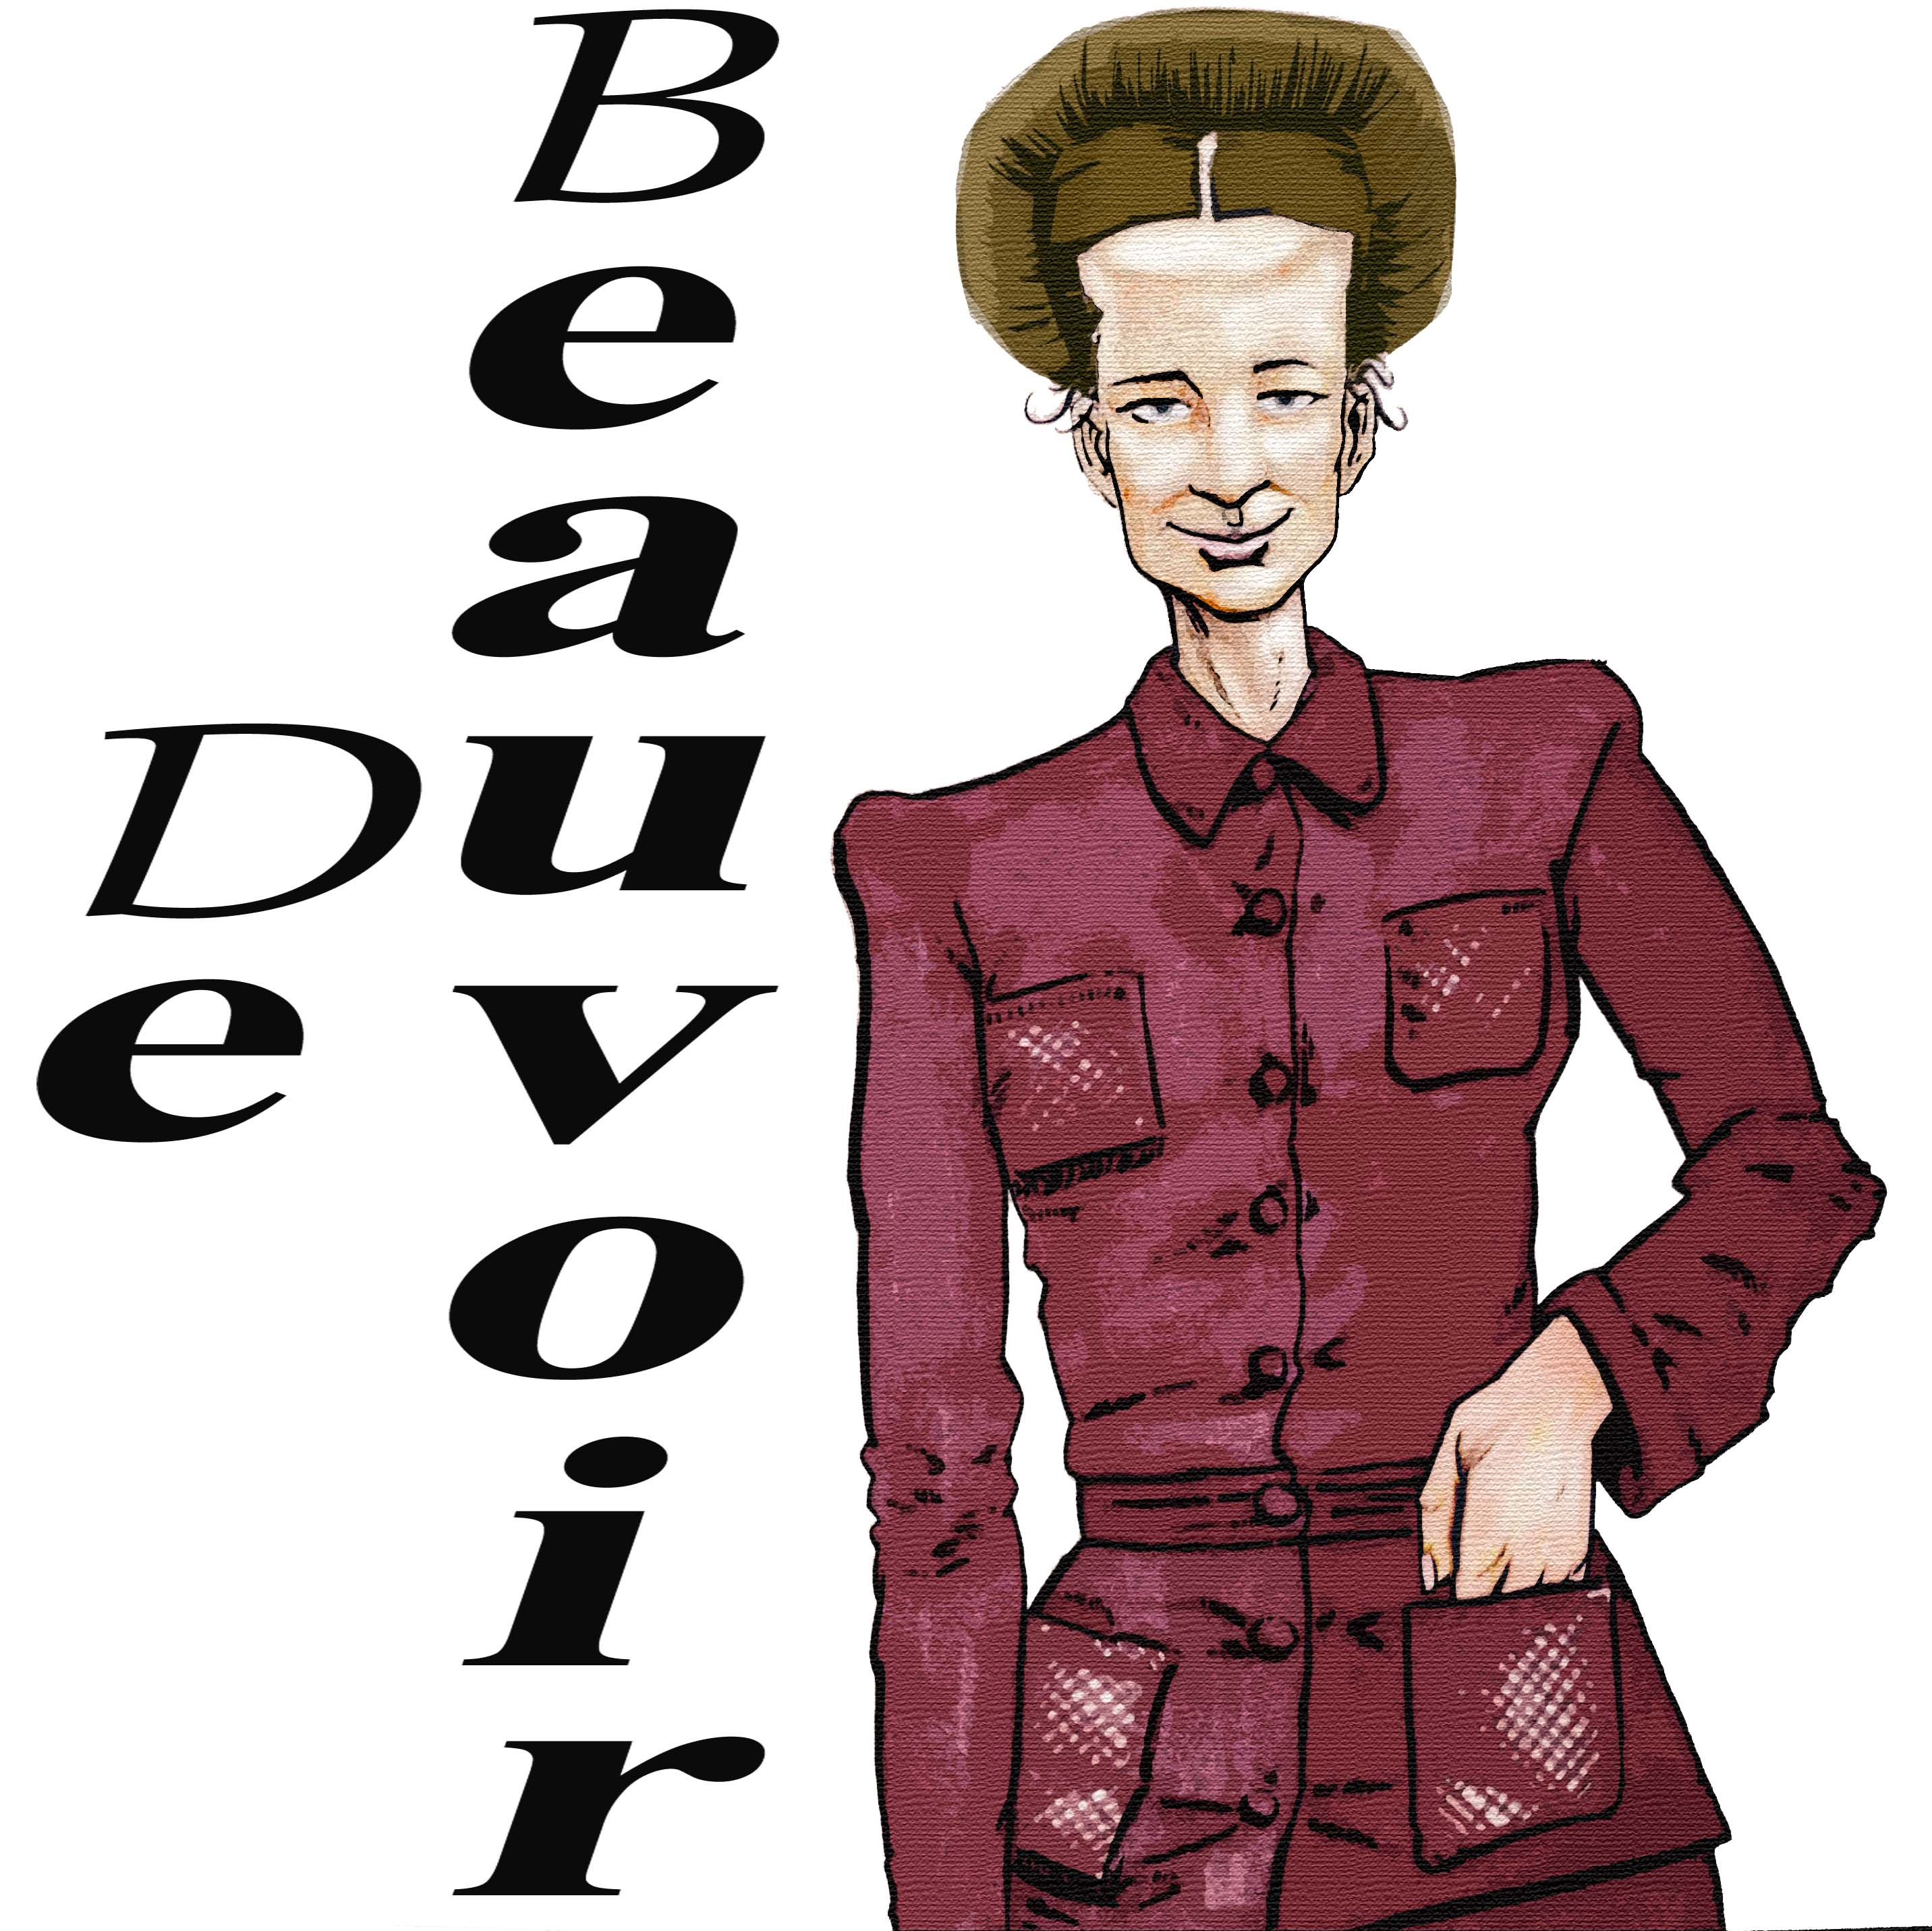 Simone de Beauvoir by Solomon Grundy